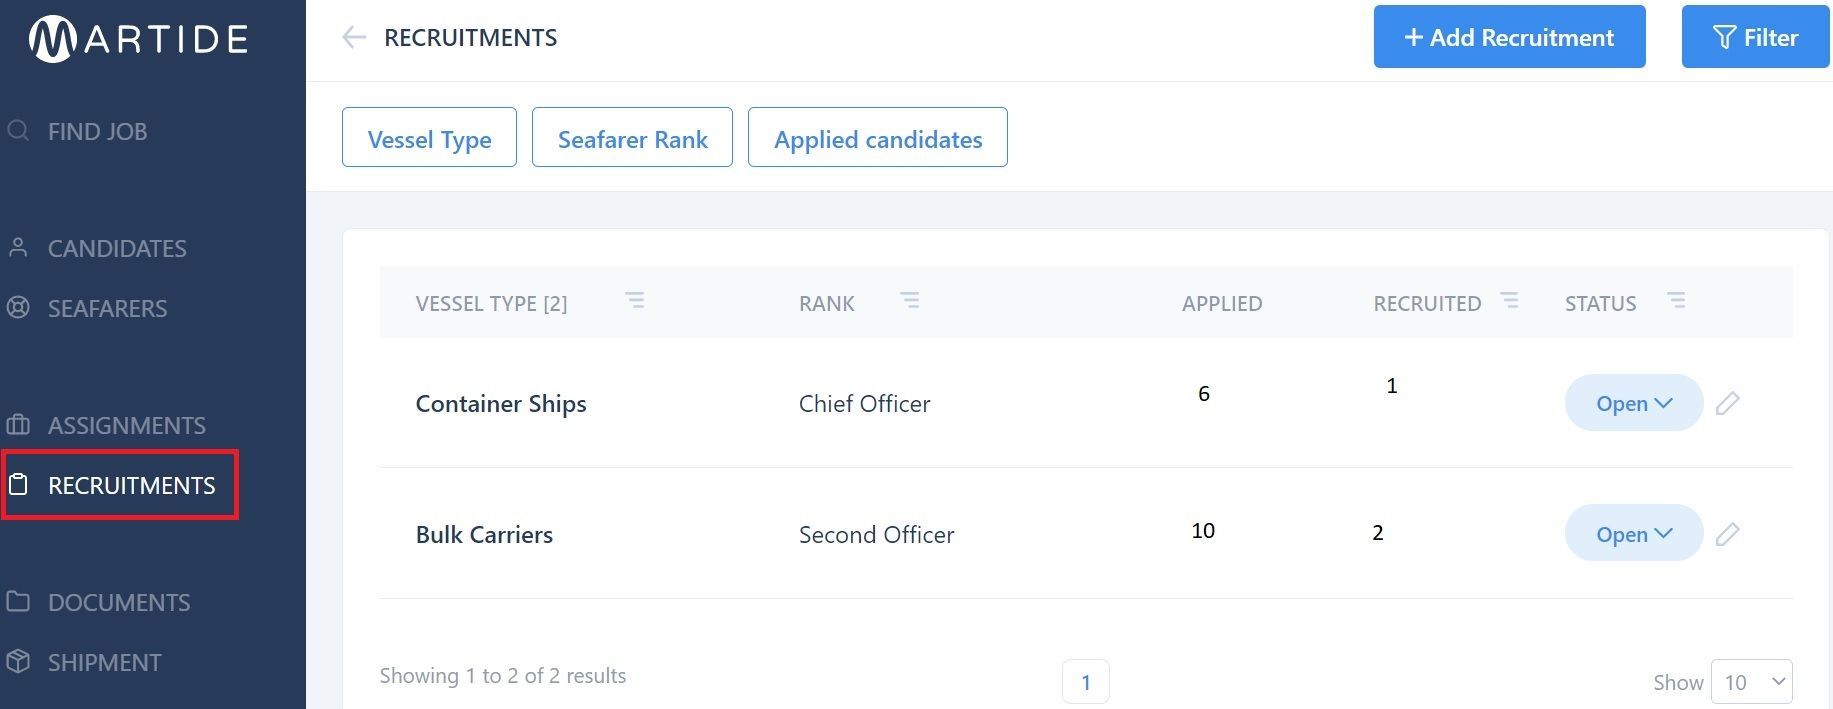 screenshot of the Martide website showing the recruitments page